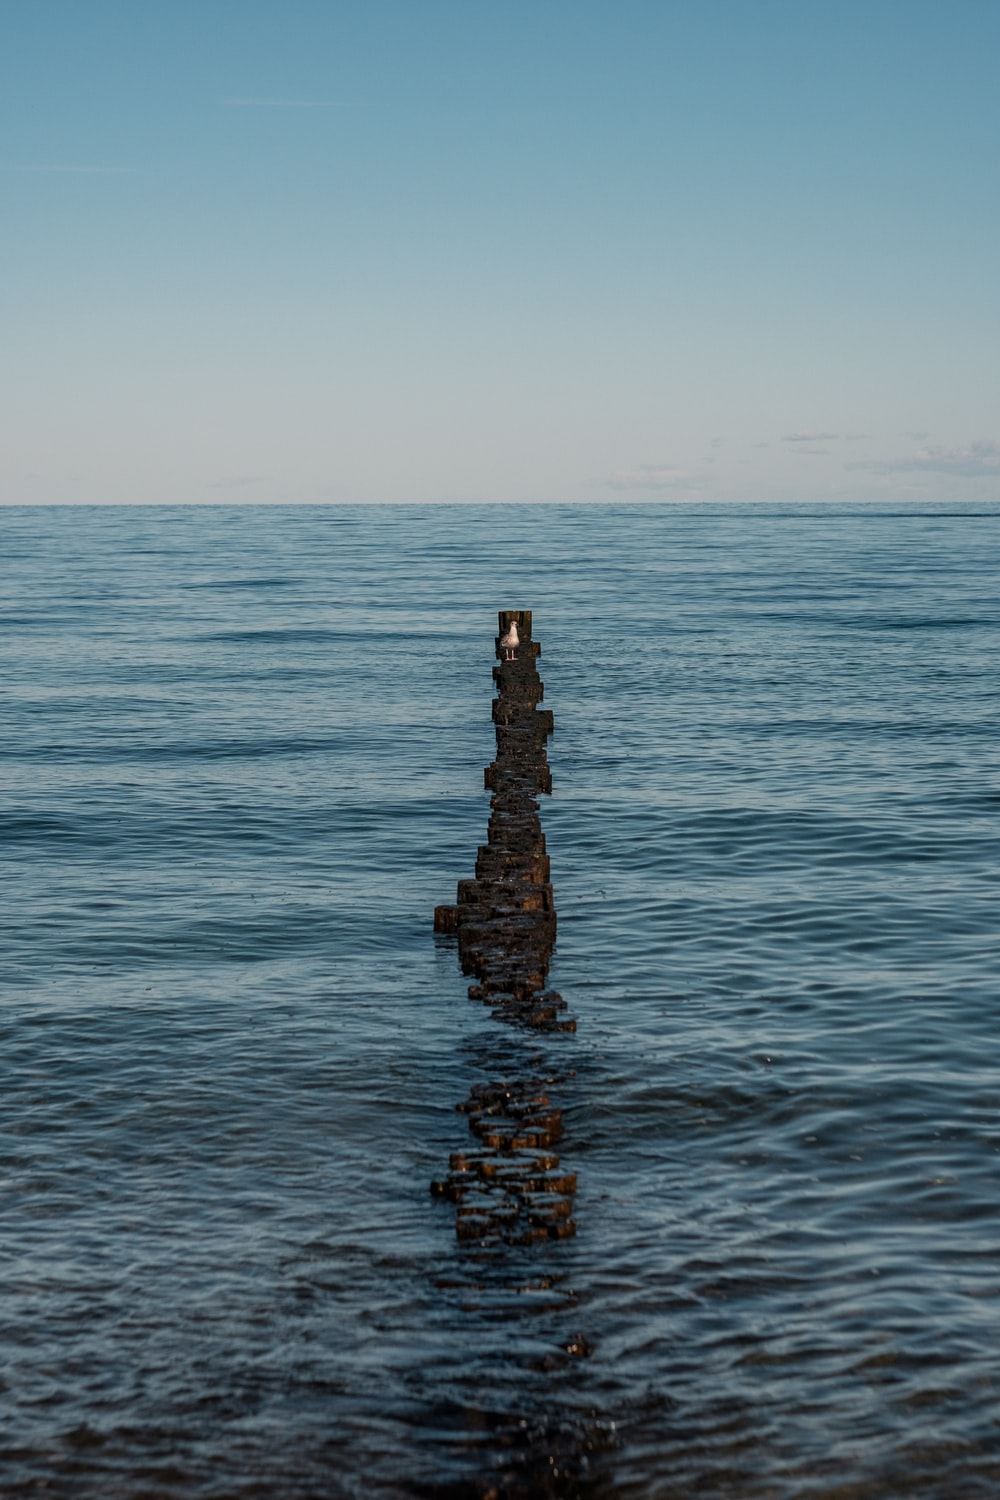 brown and black concrete dock on sea during daytime